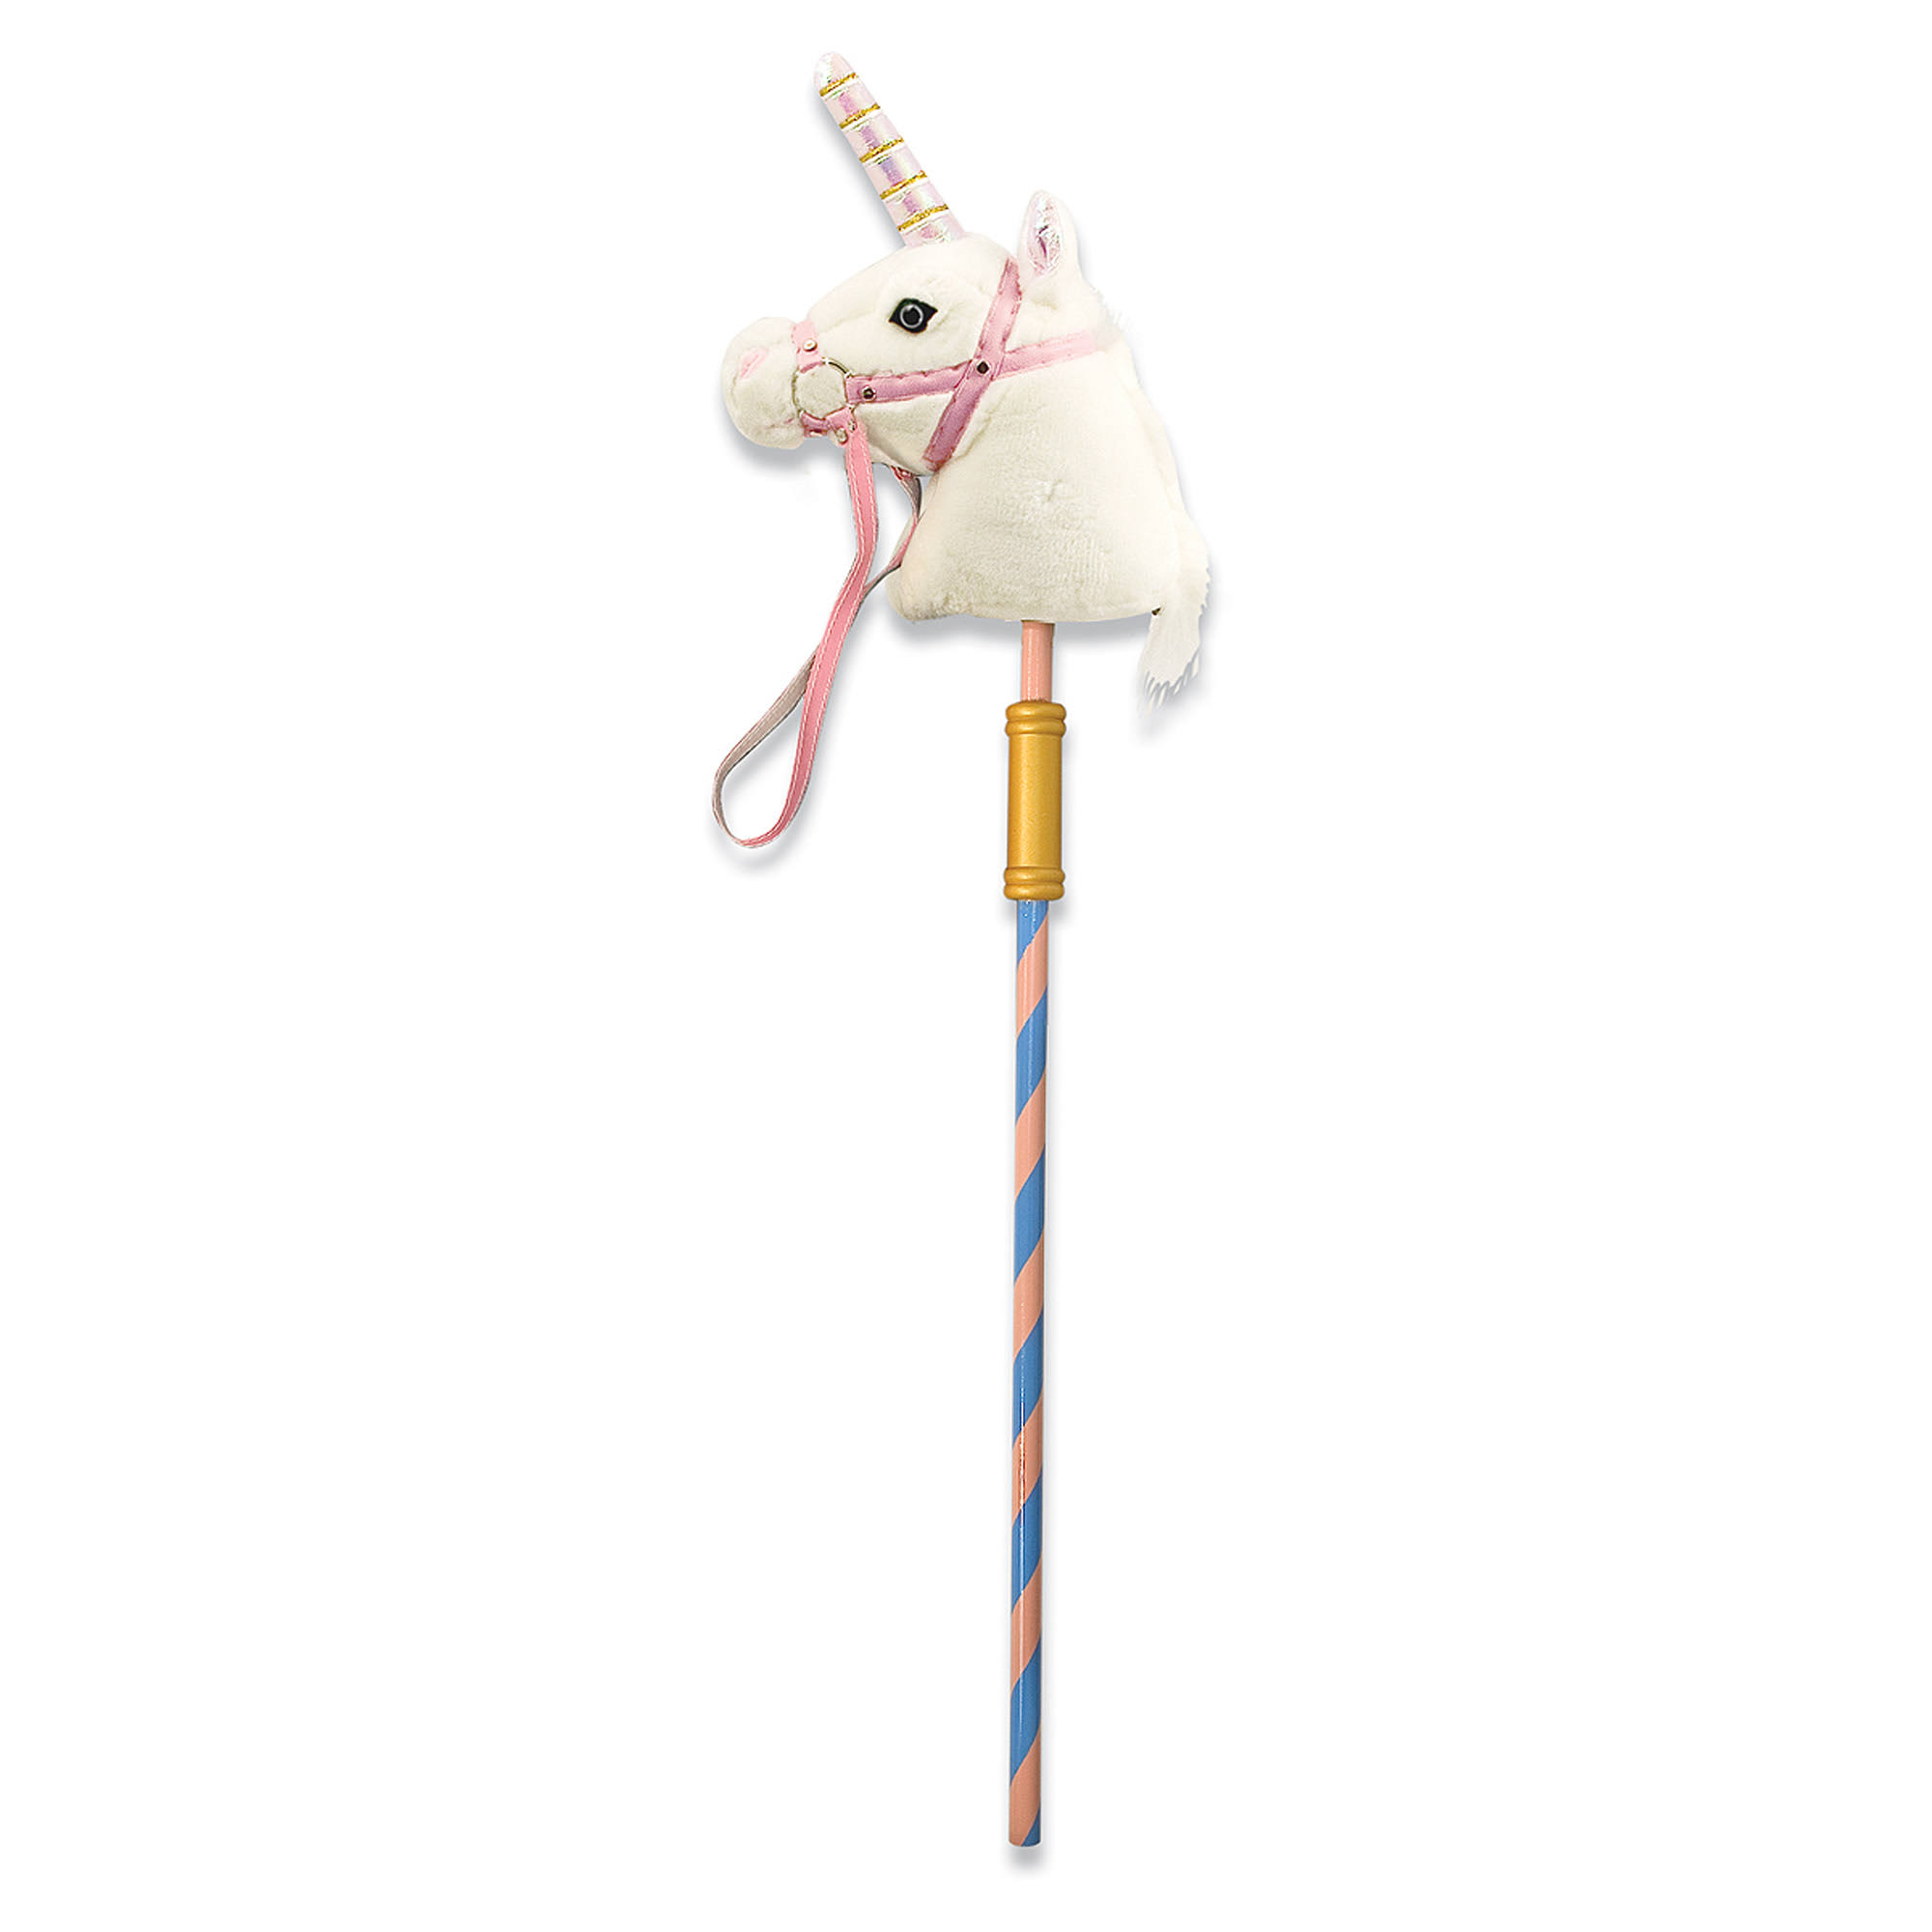 Melissa & Doug Prance 'N Play Stick Unicorn